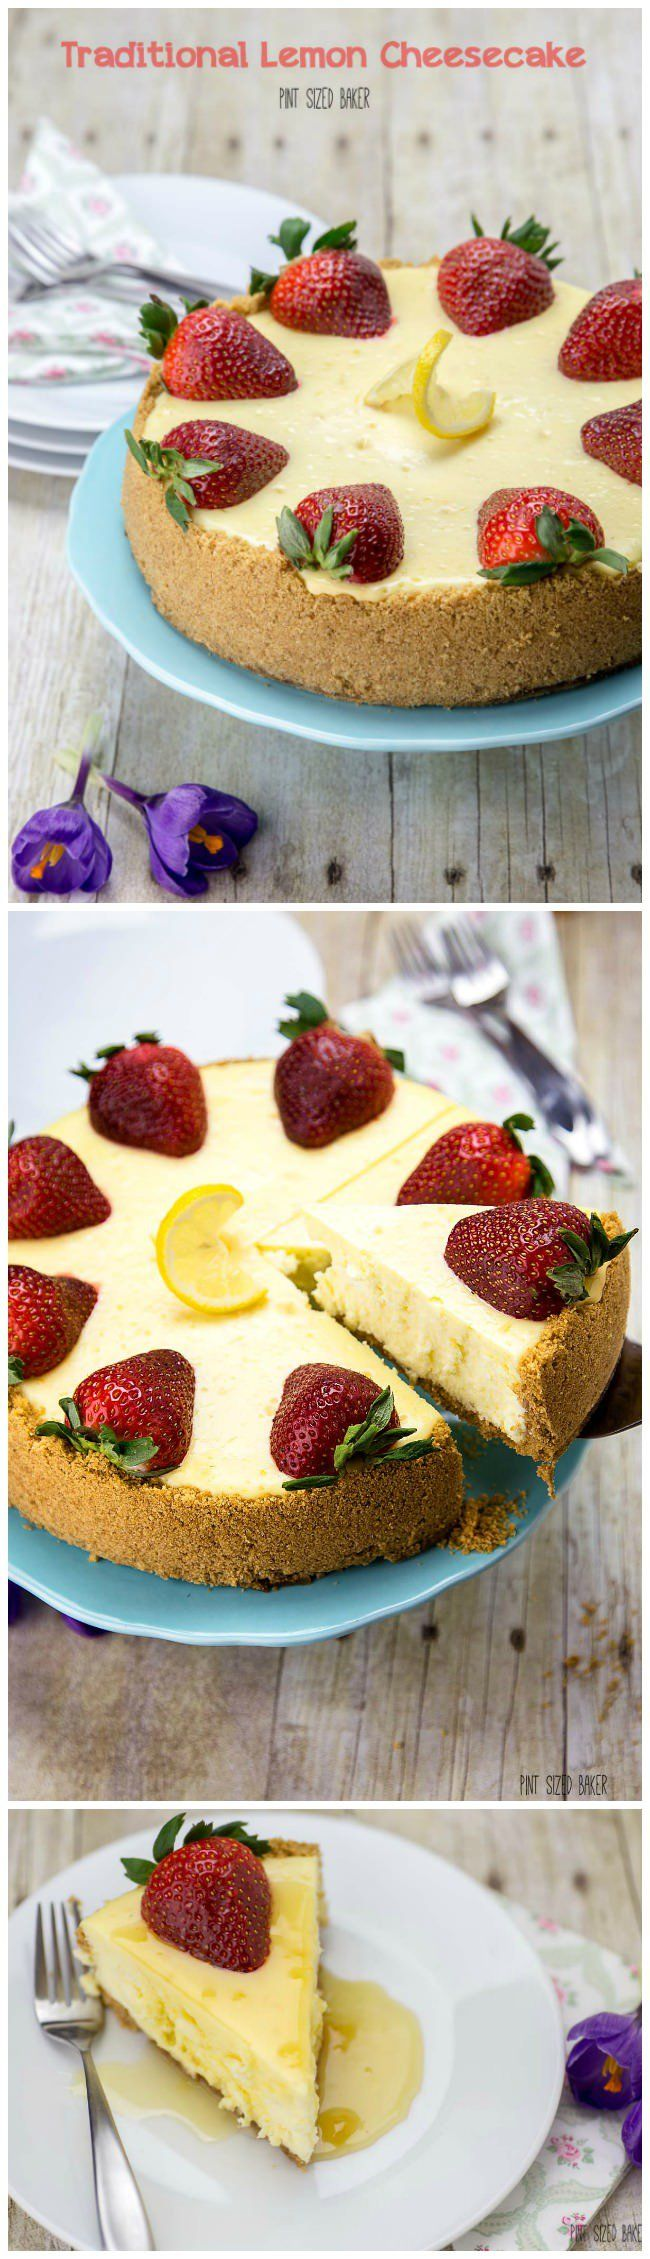 Traditional Lemon Cheesecake Recipe